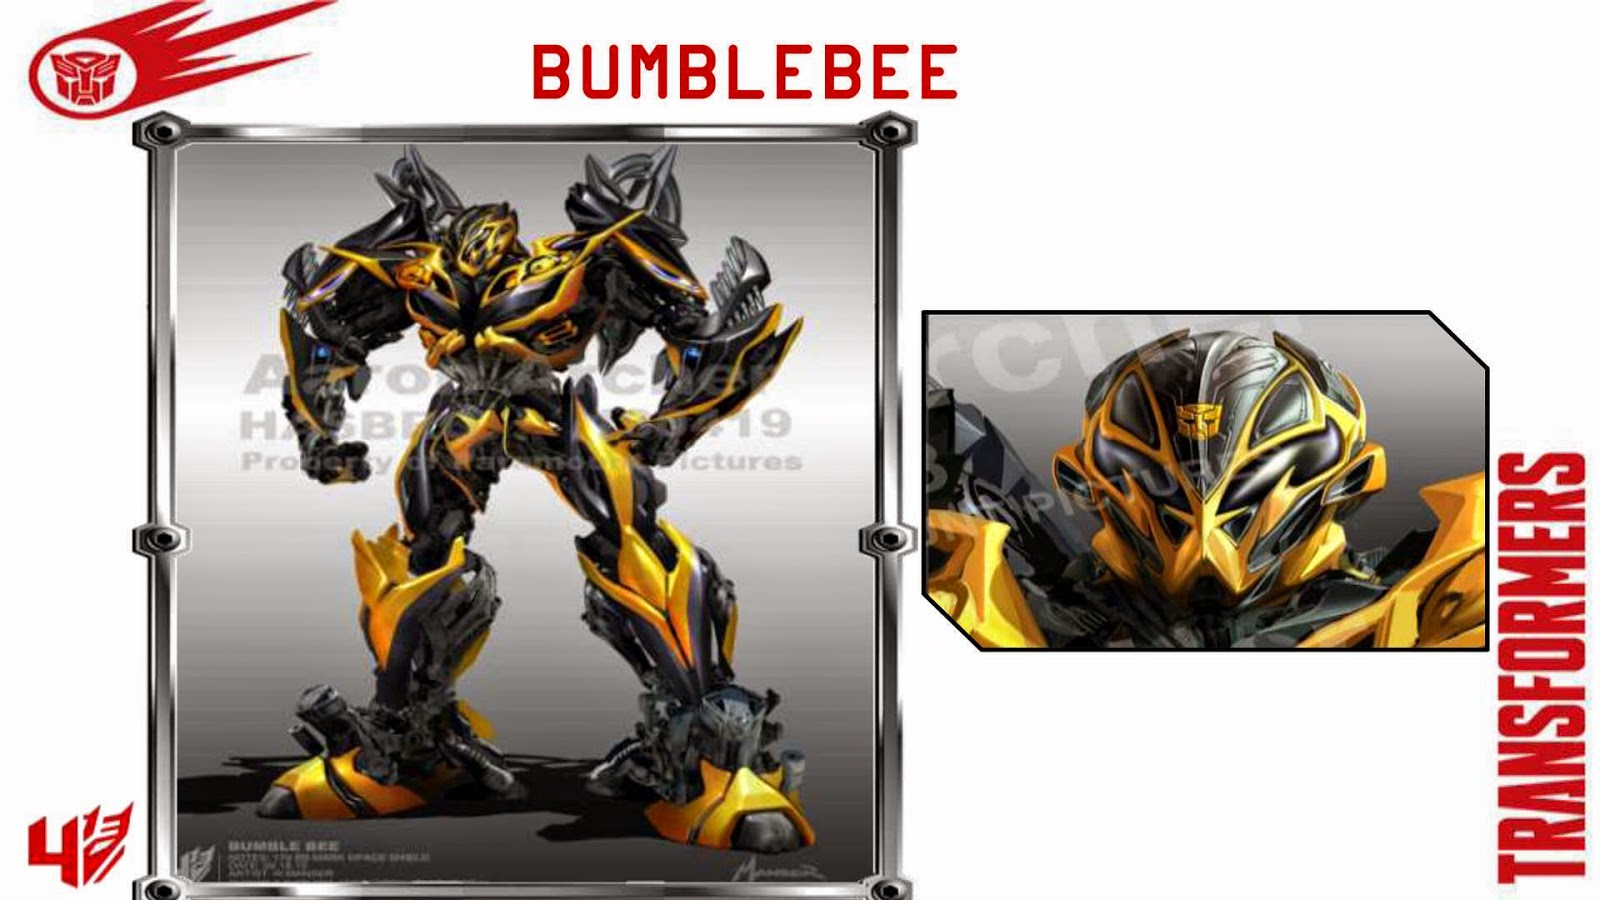 transformers live action movie blog tflamb transformers 4 concept art and products. Black Bedroom Furniture Sets. Home Design Ideas